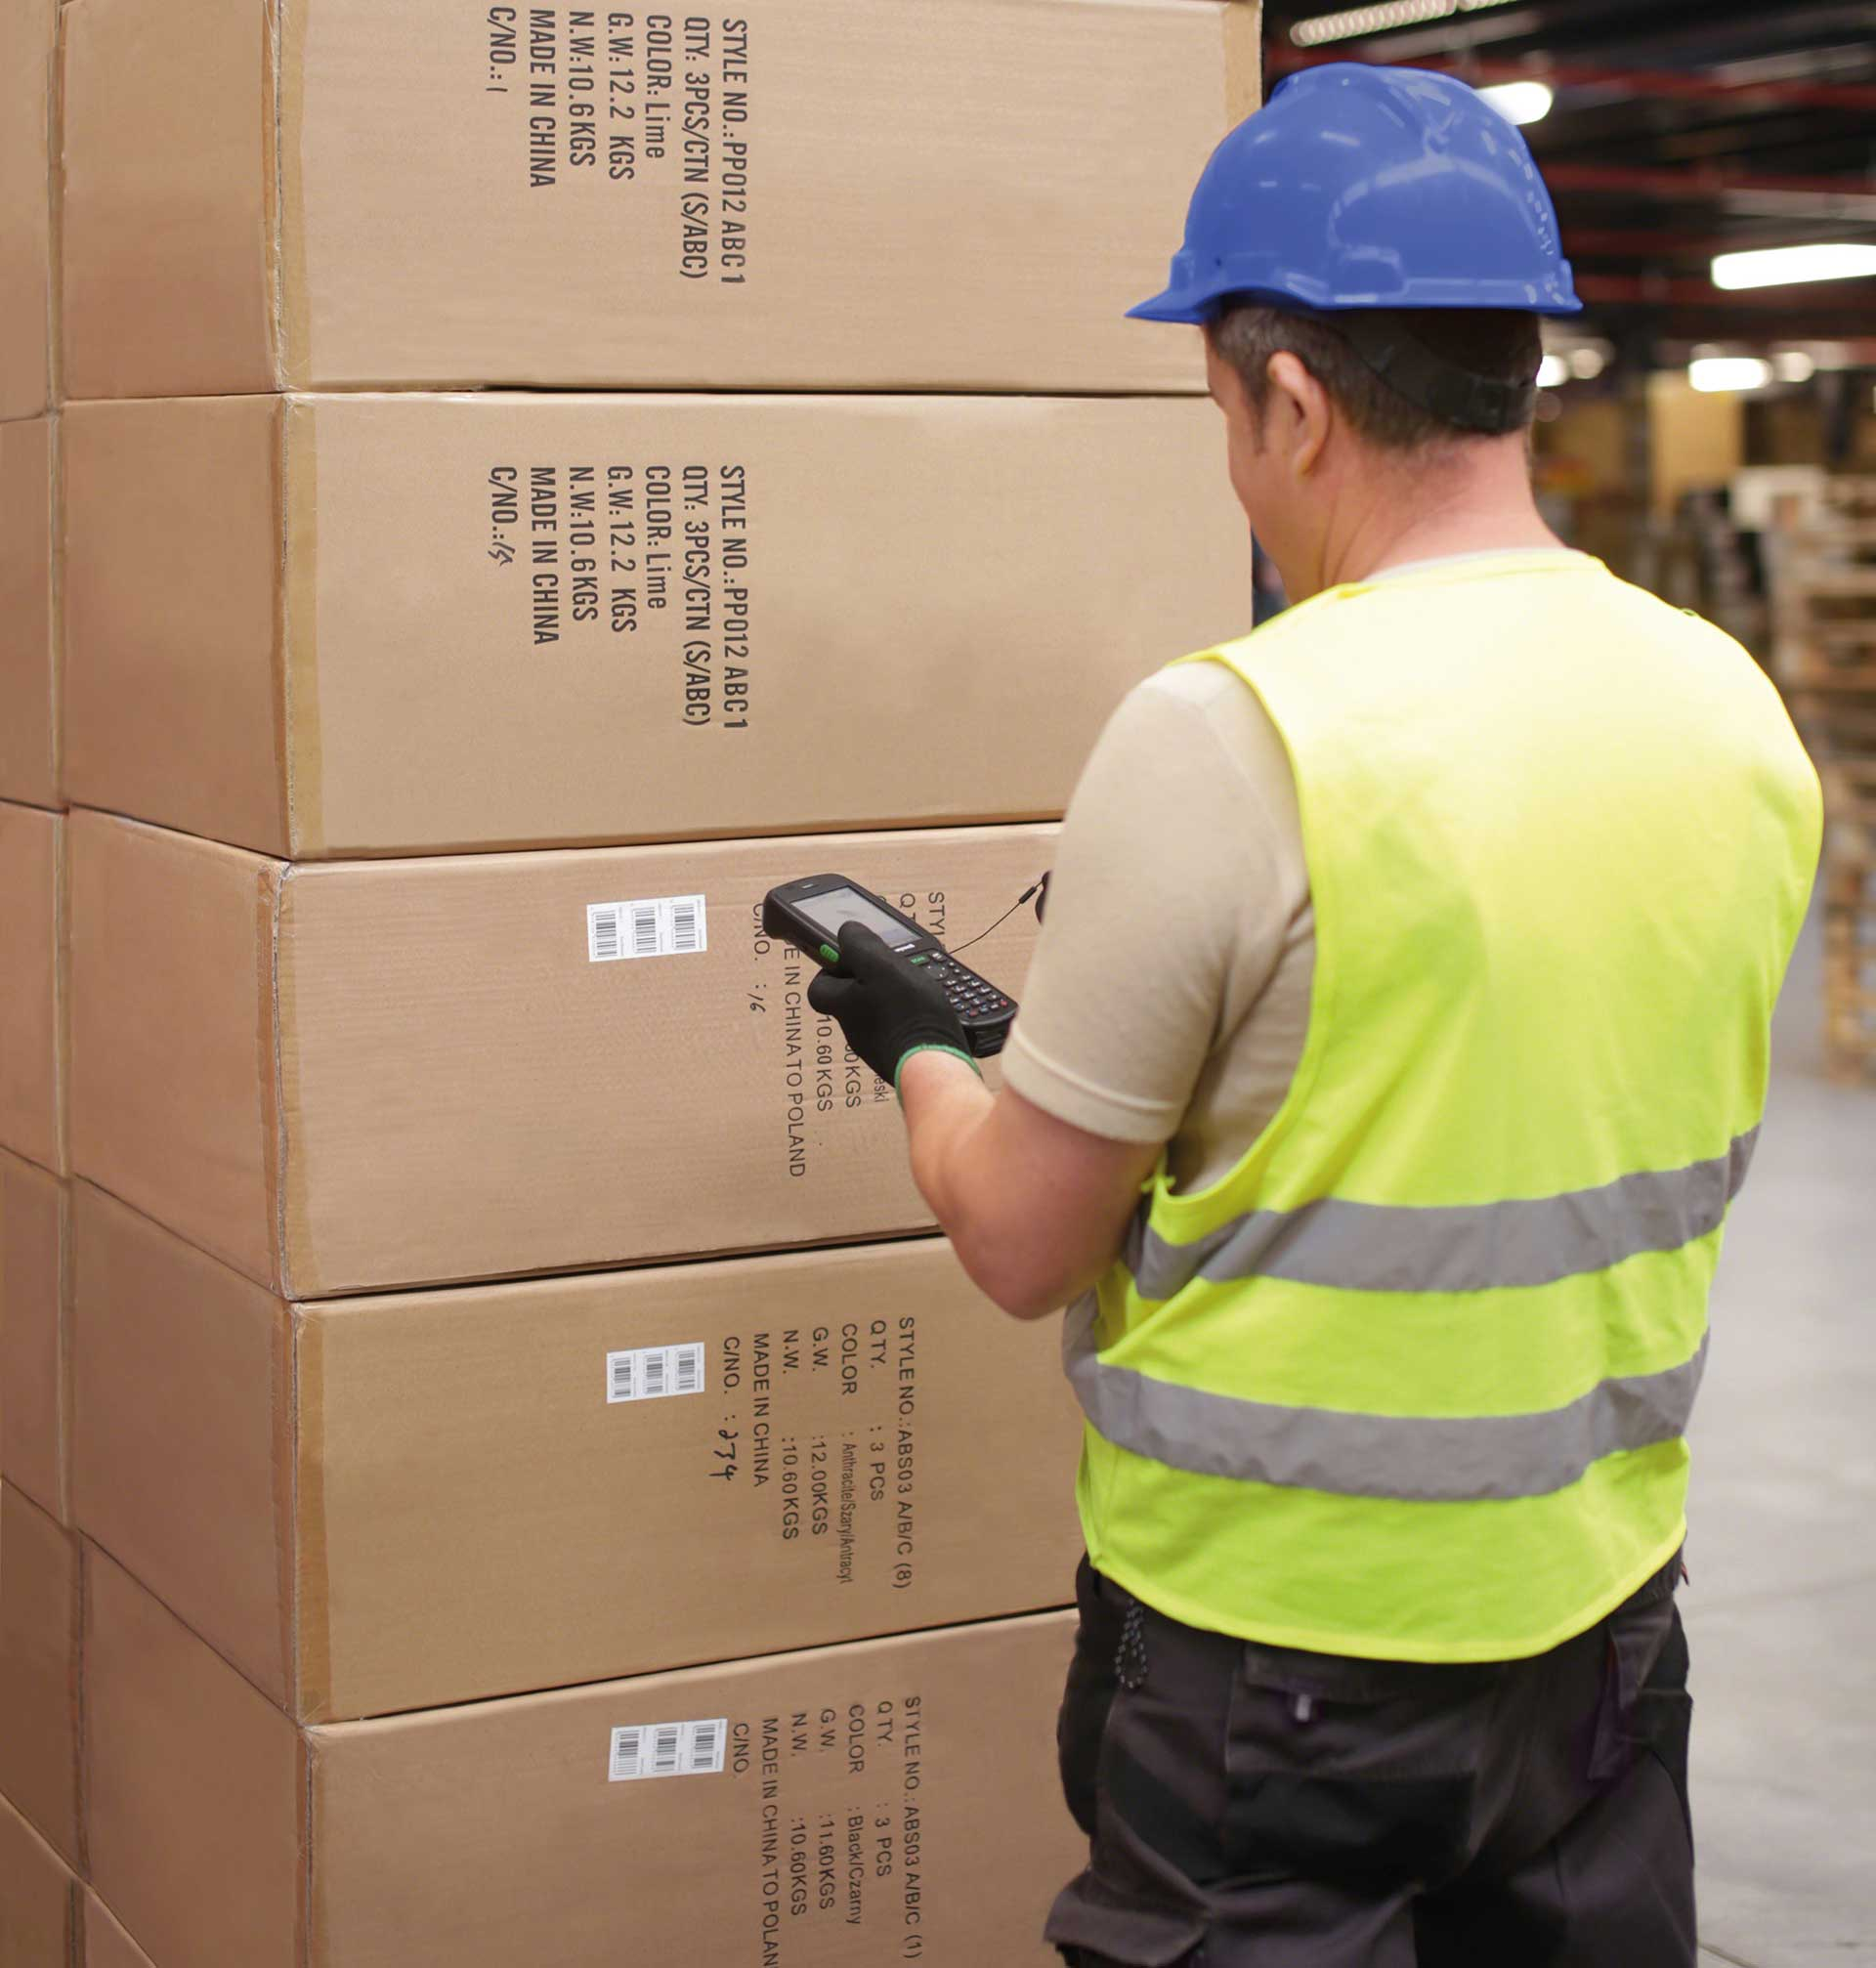 Controlling goods when picking orders